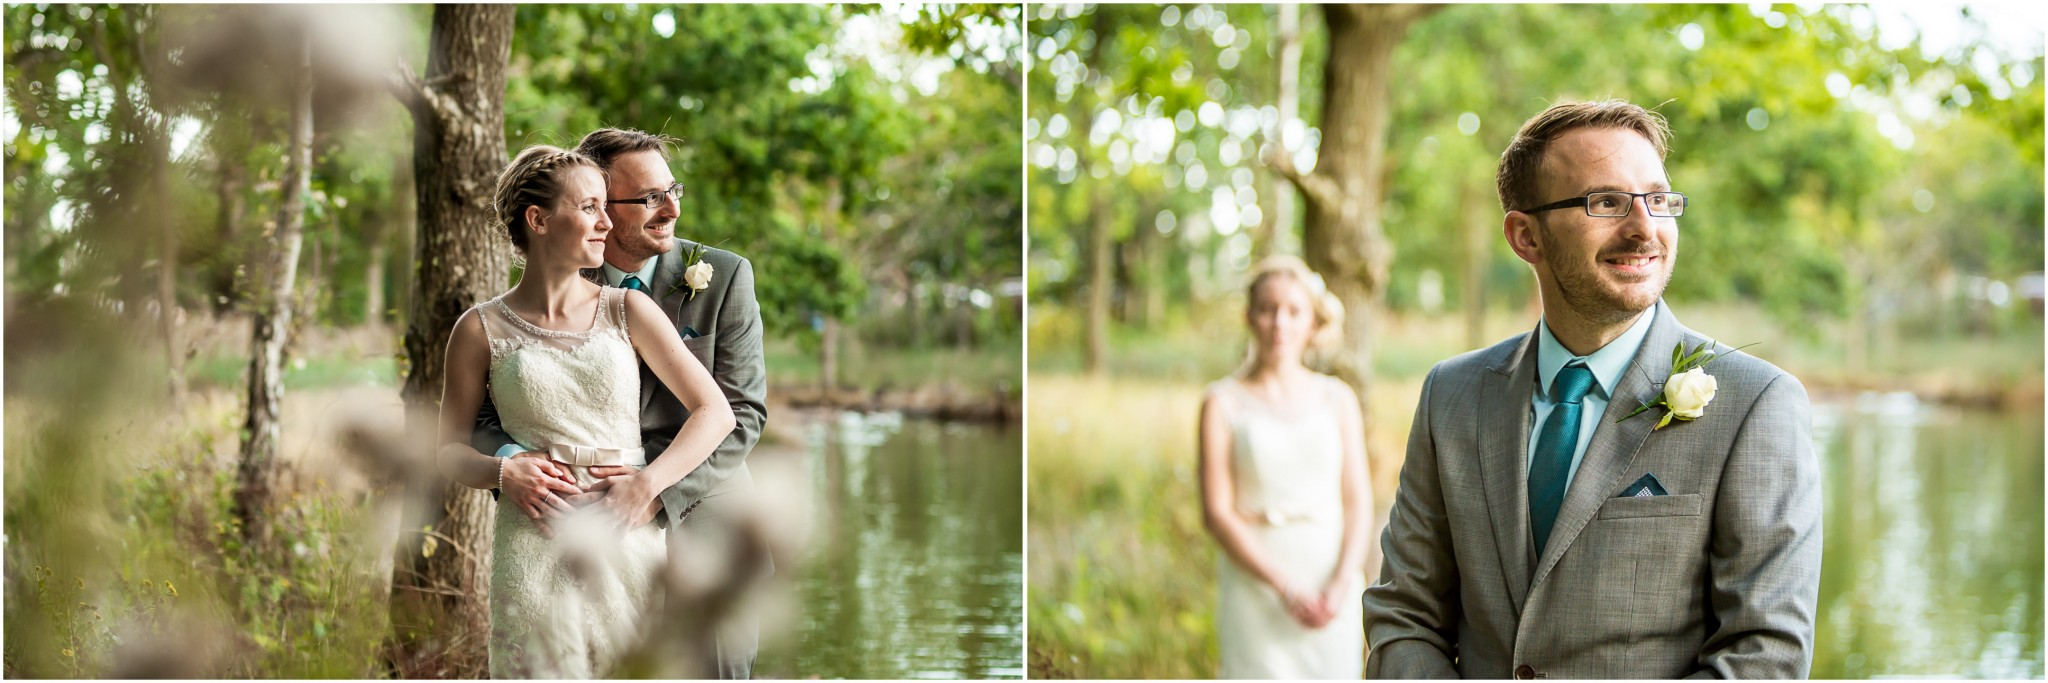 Tournerbury Woods Estate Wedding Groom & Bride by lake